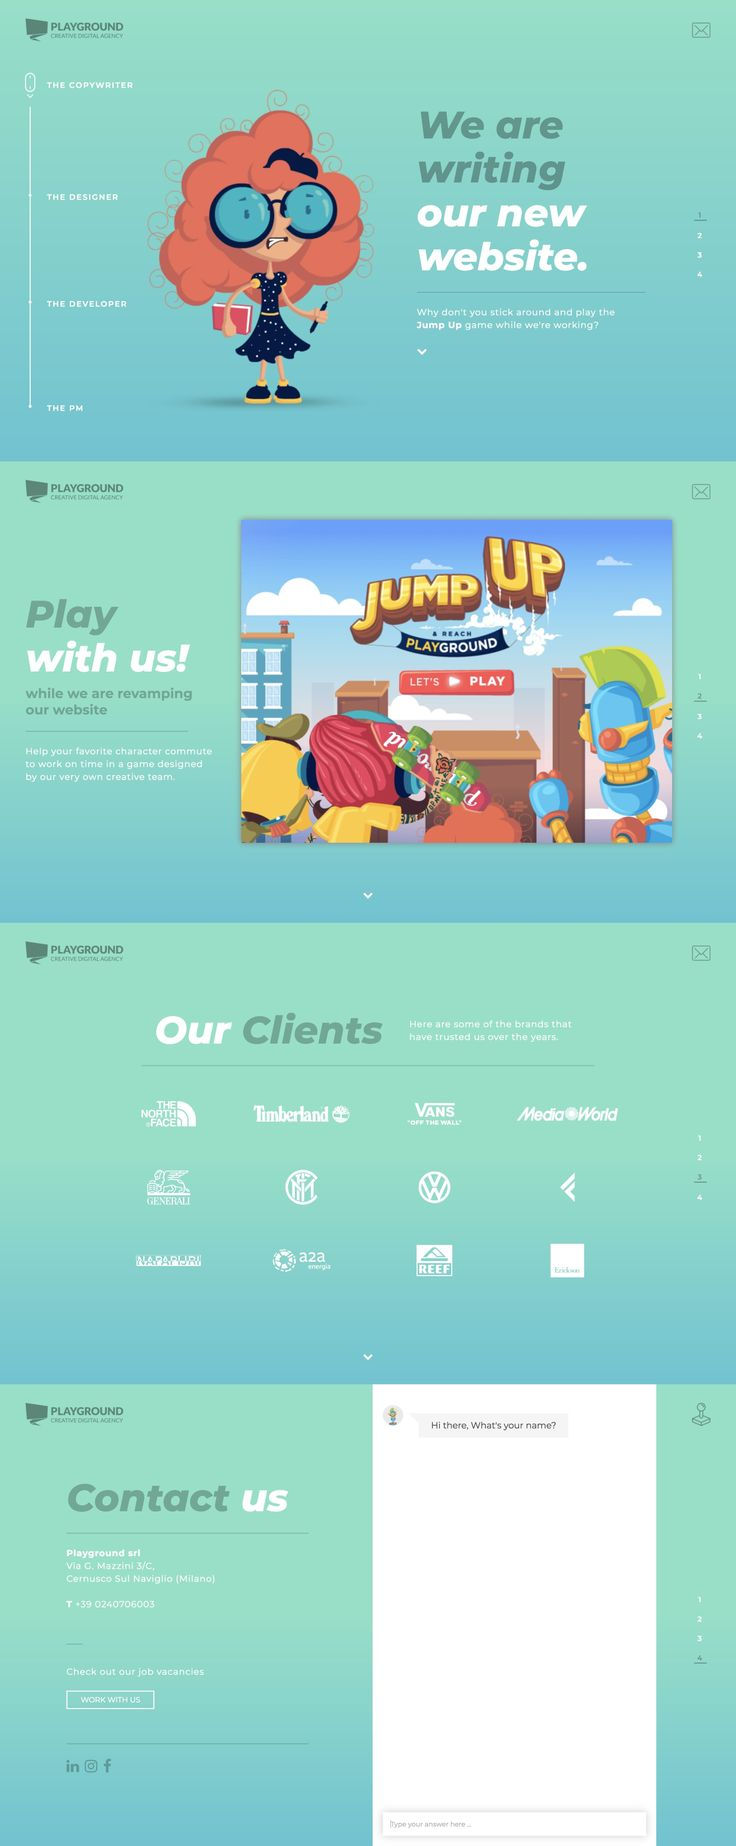 How funny are these cliche digital agency characters in this launching soon page for Playground studio. Great to see fun vibe run throughout including an interactive game and a chat bot at the end with the developer/robot 🤖